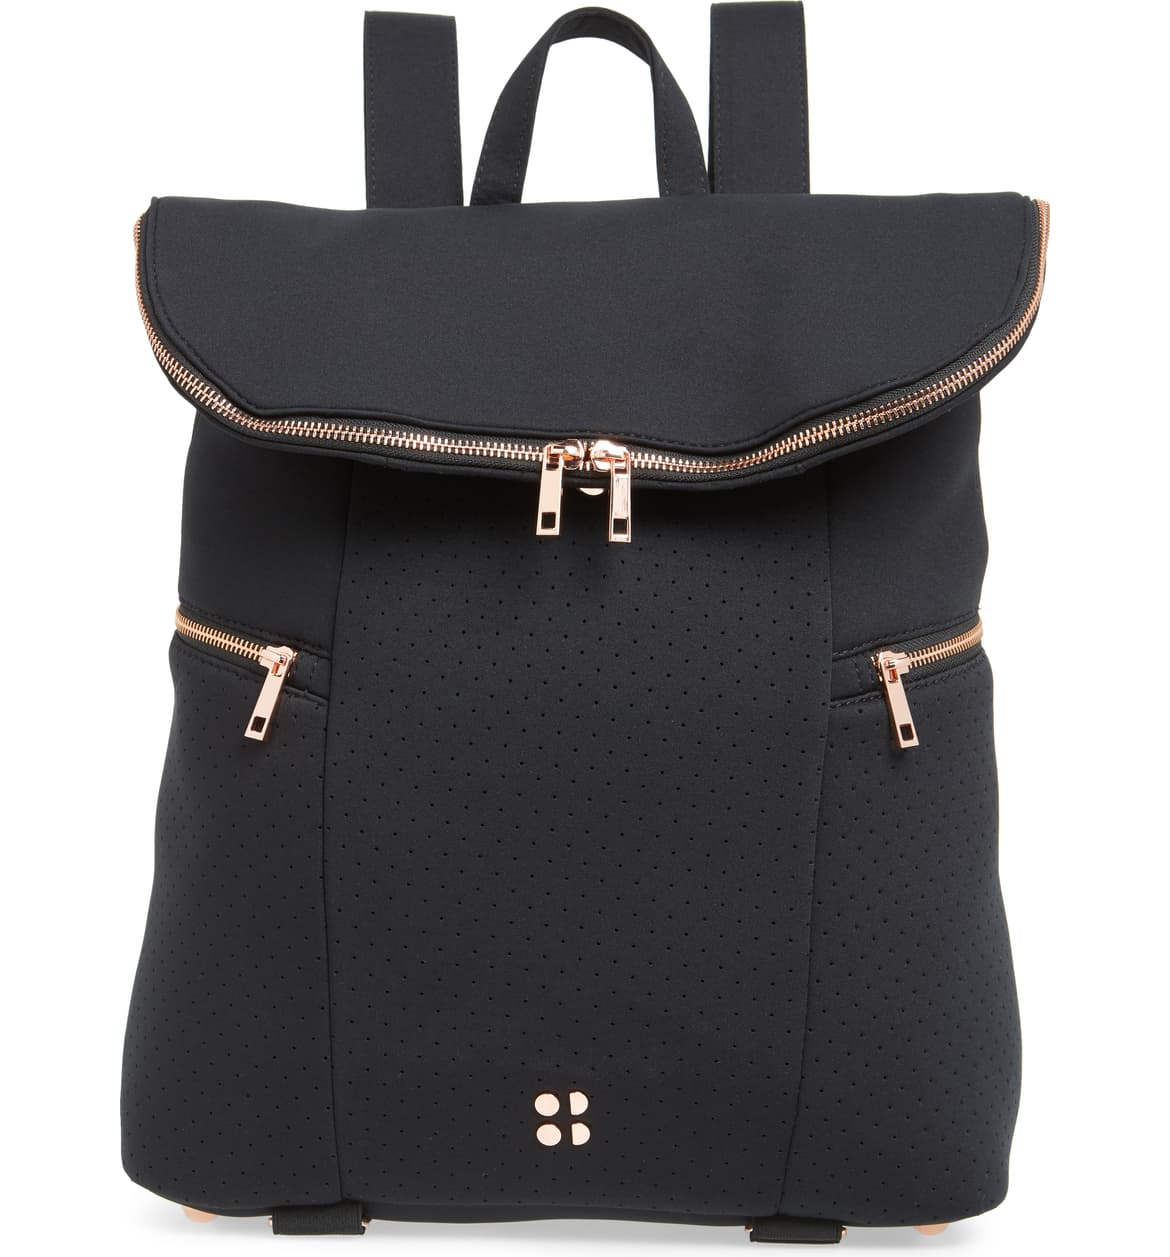 "<p>Roomy enough to hold your gym clothes or dancing shoes, this perforated backpack also includes straps on the bottom to secure your yoga mat. $115.{&nbsp;}<a  href=""https://shop.nordstrom.com/s/sweaty-betty-all-sport-backpack/5055059/full?origin=keywordsearch-personalizedsort&breadcrumb=Home%2FAll%20Results&color=black"" target=""_blank"" title=""https://shop.nordstrom.com/s/sweaty-betty-all-sport-backpack/5055059/full?origin=keywordsearch-personalizedsort&breadcrumb=Home%2FAll%20Results&color=black"">Shop it{&nbsp;}</a>(Image: Nordstrom){&nbsp;}</p>"